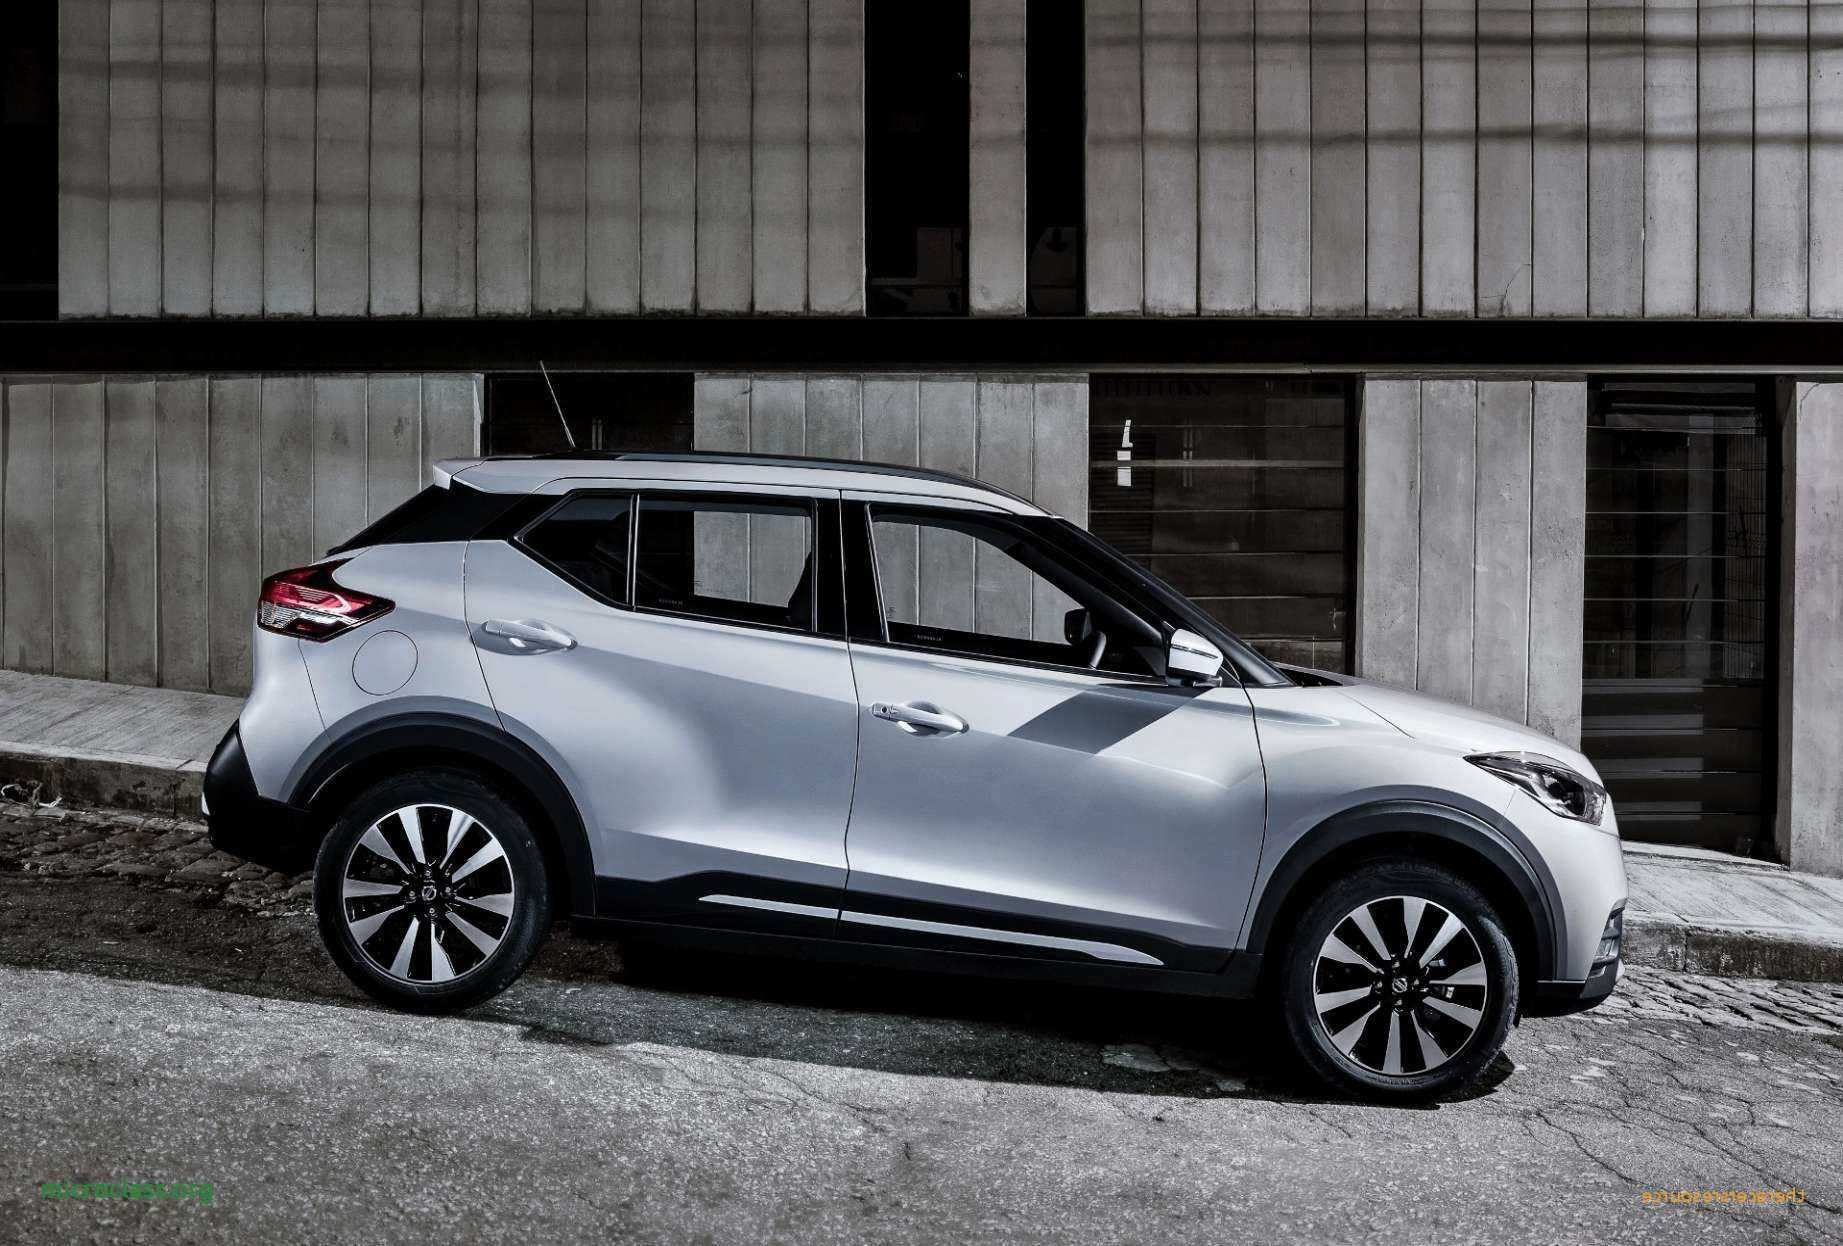 61 A Nissan Kicks 2019 Mexico Reviews